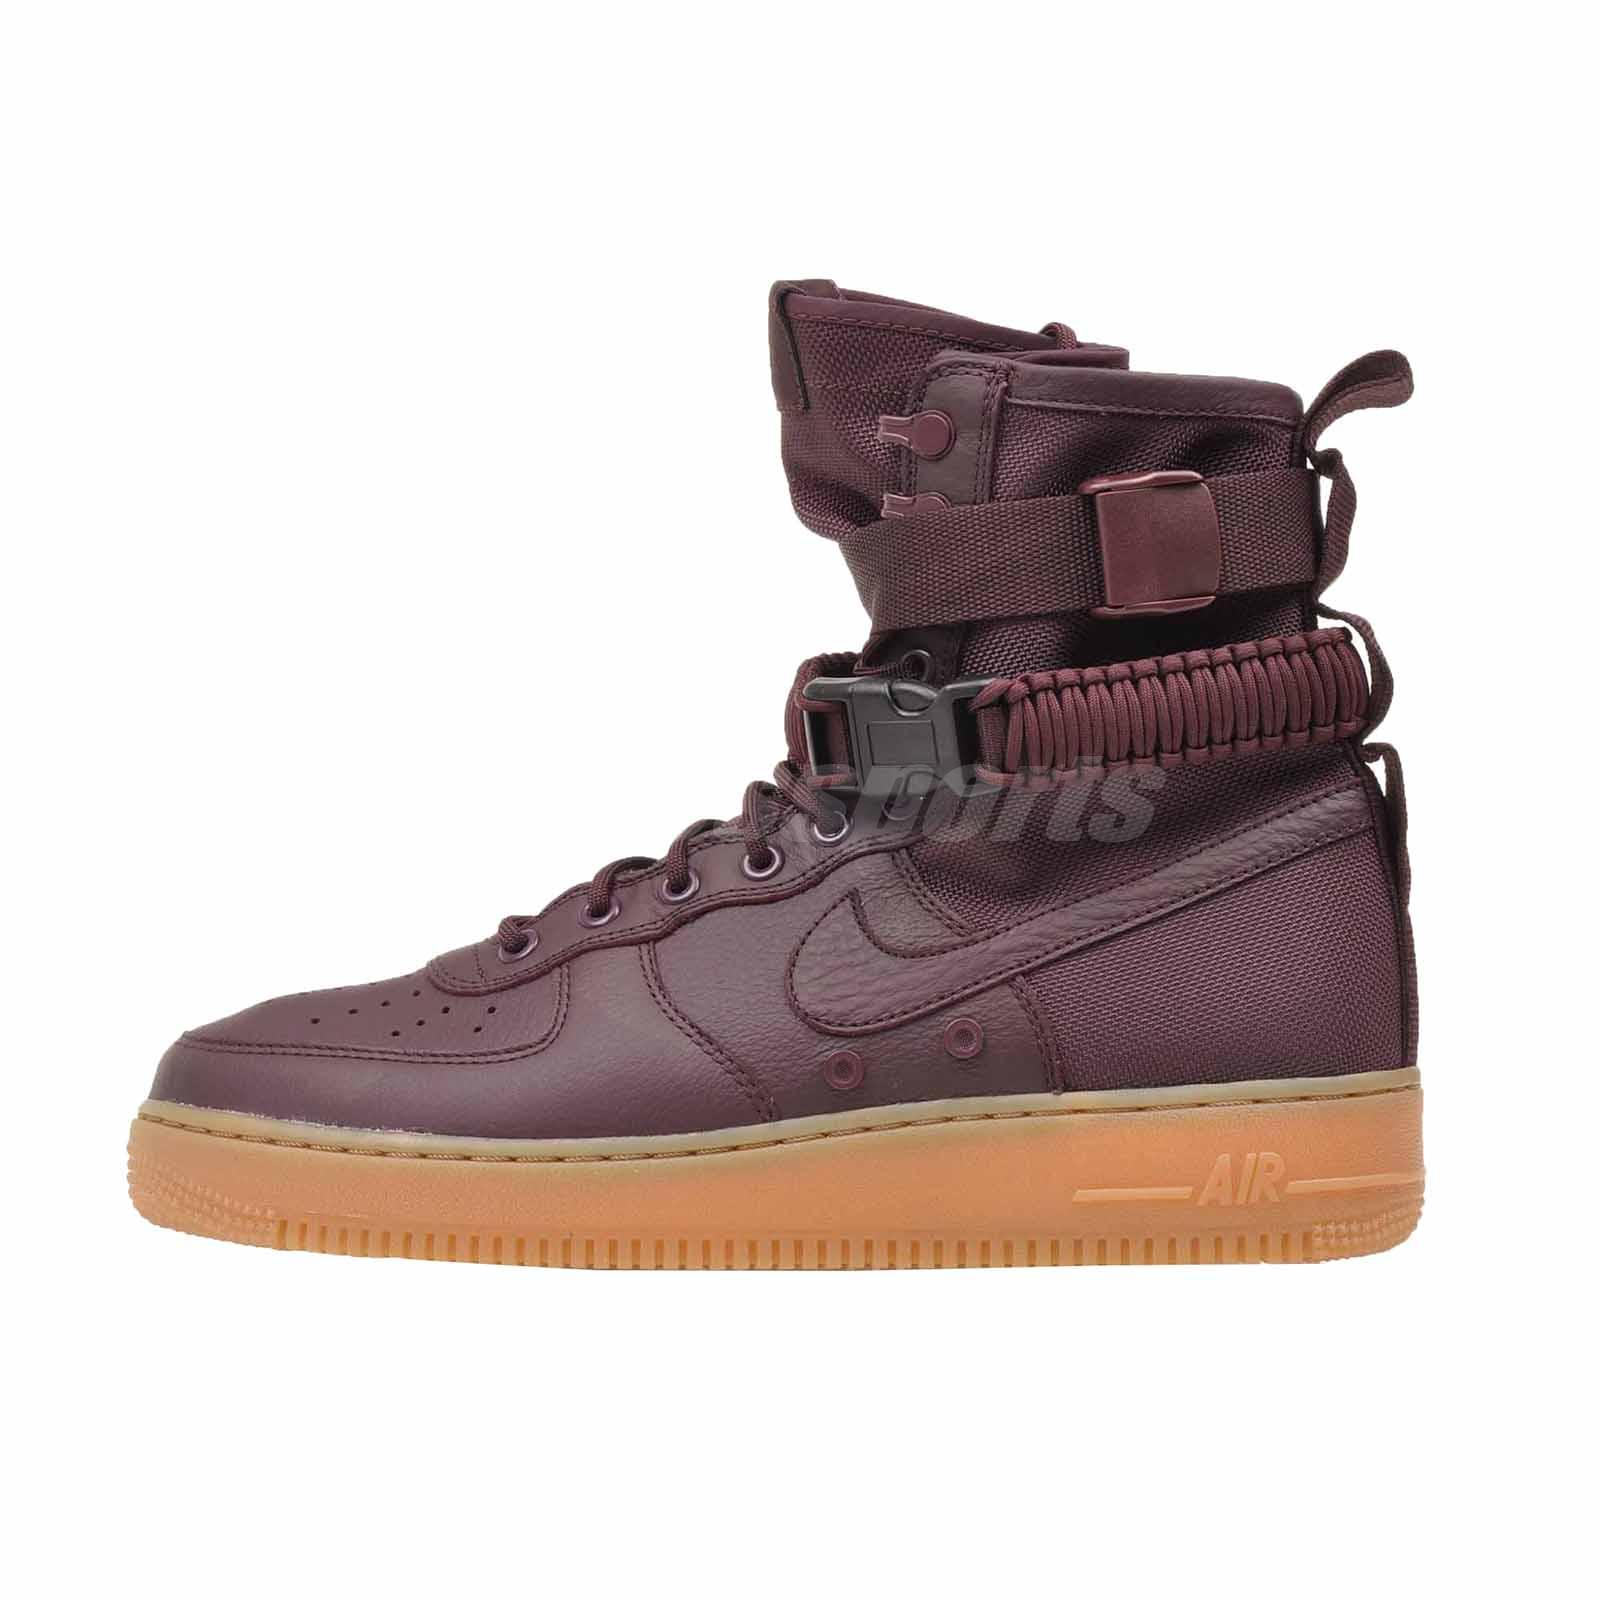 4a6a2cd9a73 Nike SF AF1 Casual Mens Air Force 1 High Top Shoes Burgundy Red 864024-600